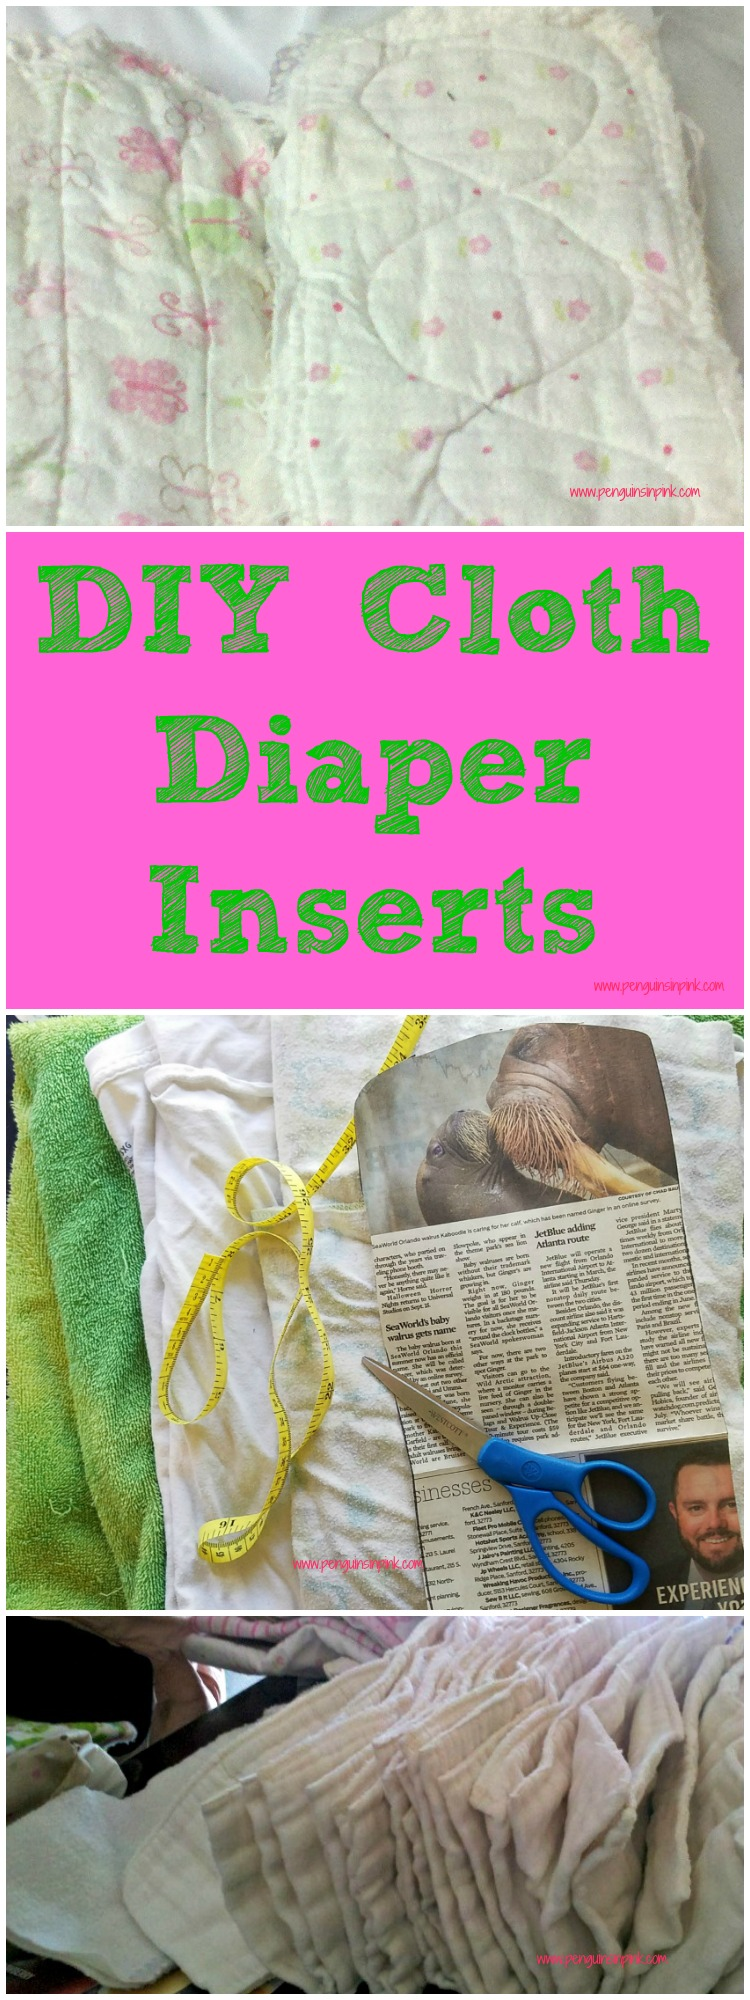 DIY cloth diaper inserts are a simple and functional sewing project to make. The cloth diaper inserts can be made out of a variety of materials including receiving blankets, t-shirts, and towels.